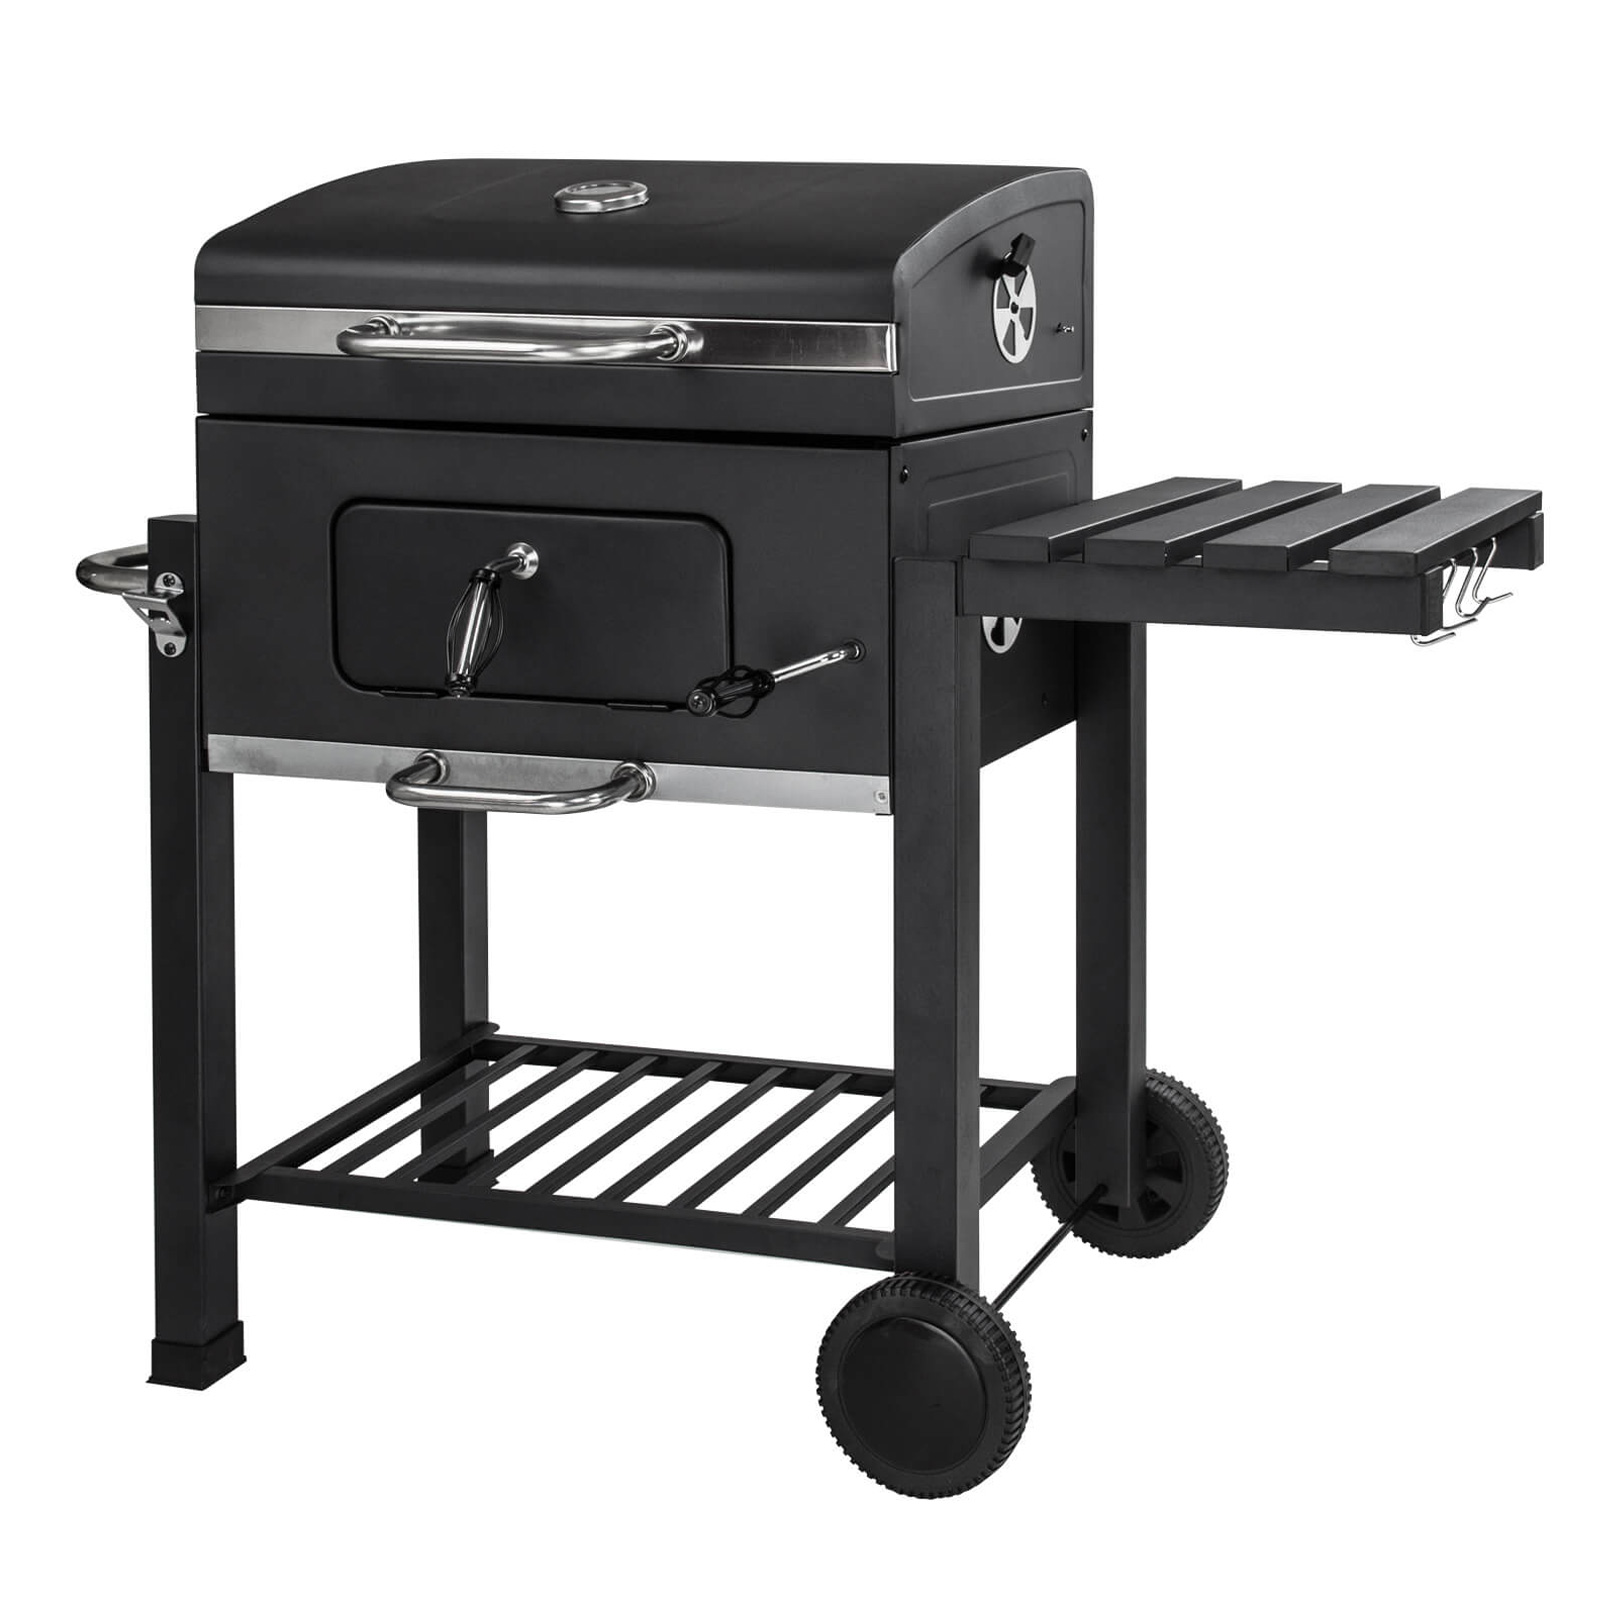 grillwagen holzkohlegrill houston mit trolley. Black Bedroom Furniture Sets. Home Design Ideas